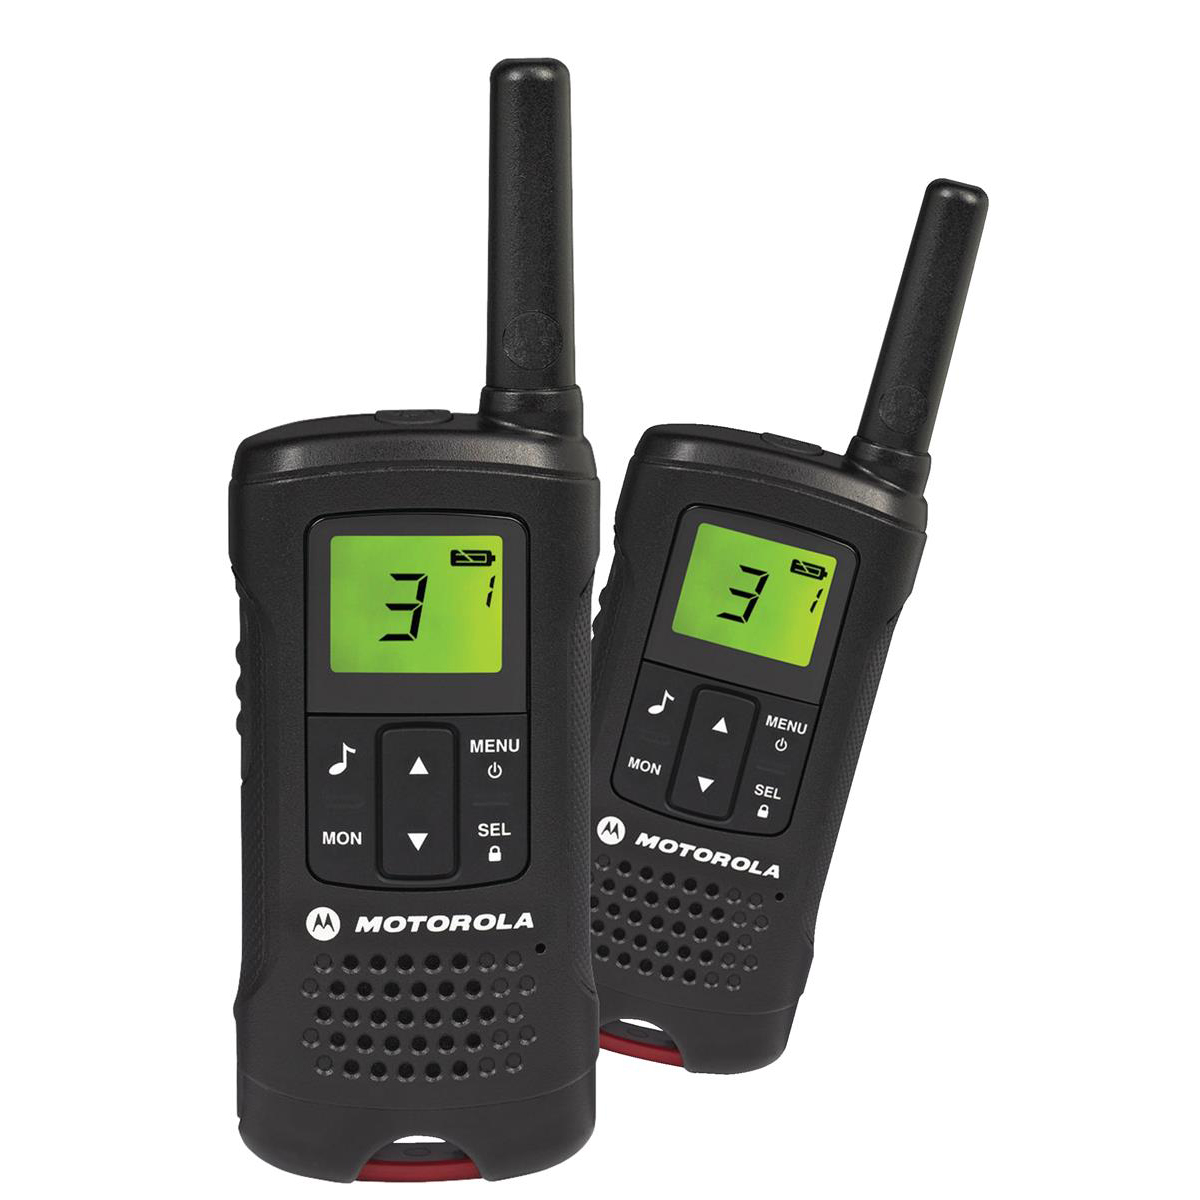 Motorola TLKR-T60 2-way Radios Band PMR446 8 Channels 121 Codes Range 8km Ref 50046 Pair